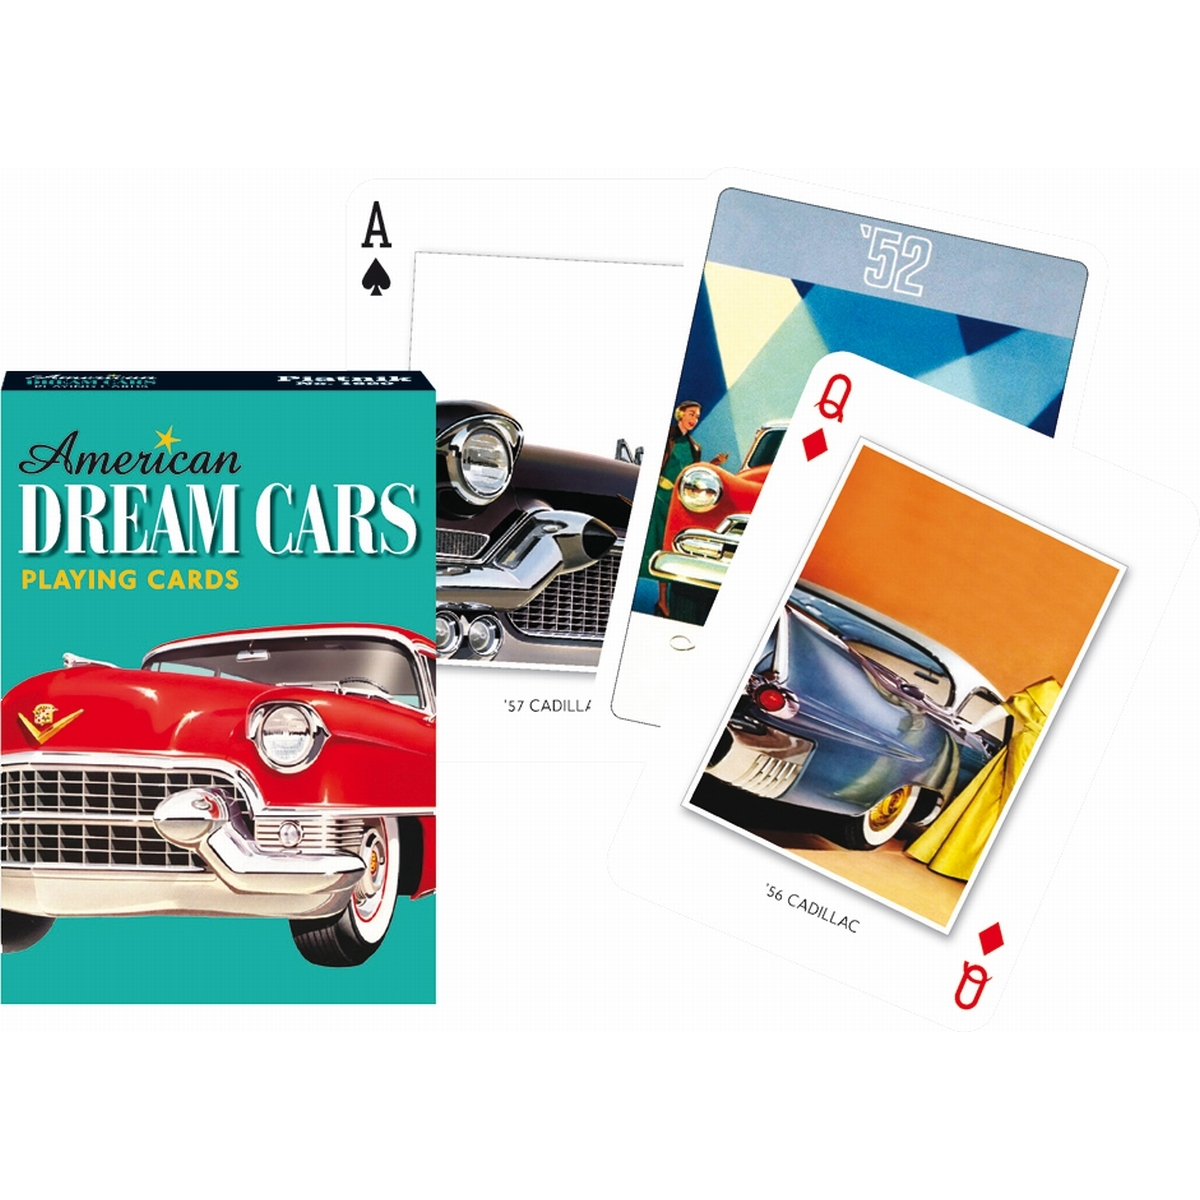 AMERICAN DREAM CARS - 55 CARTES